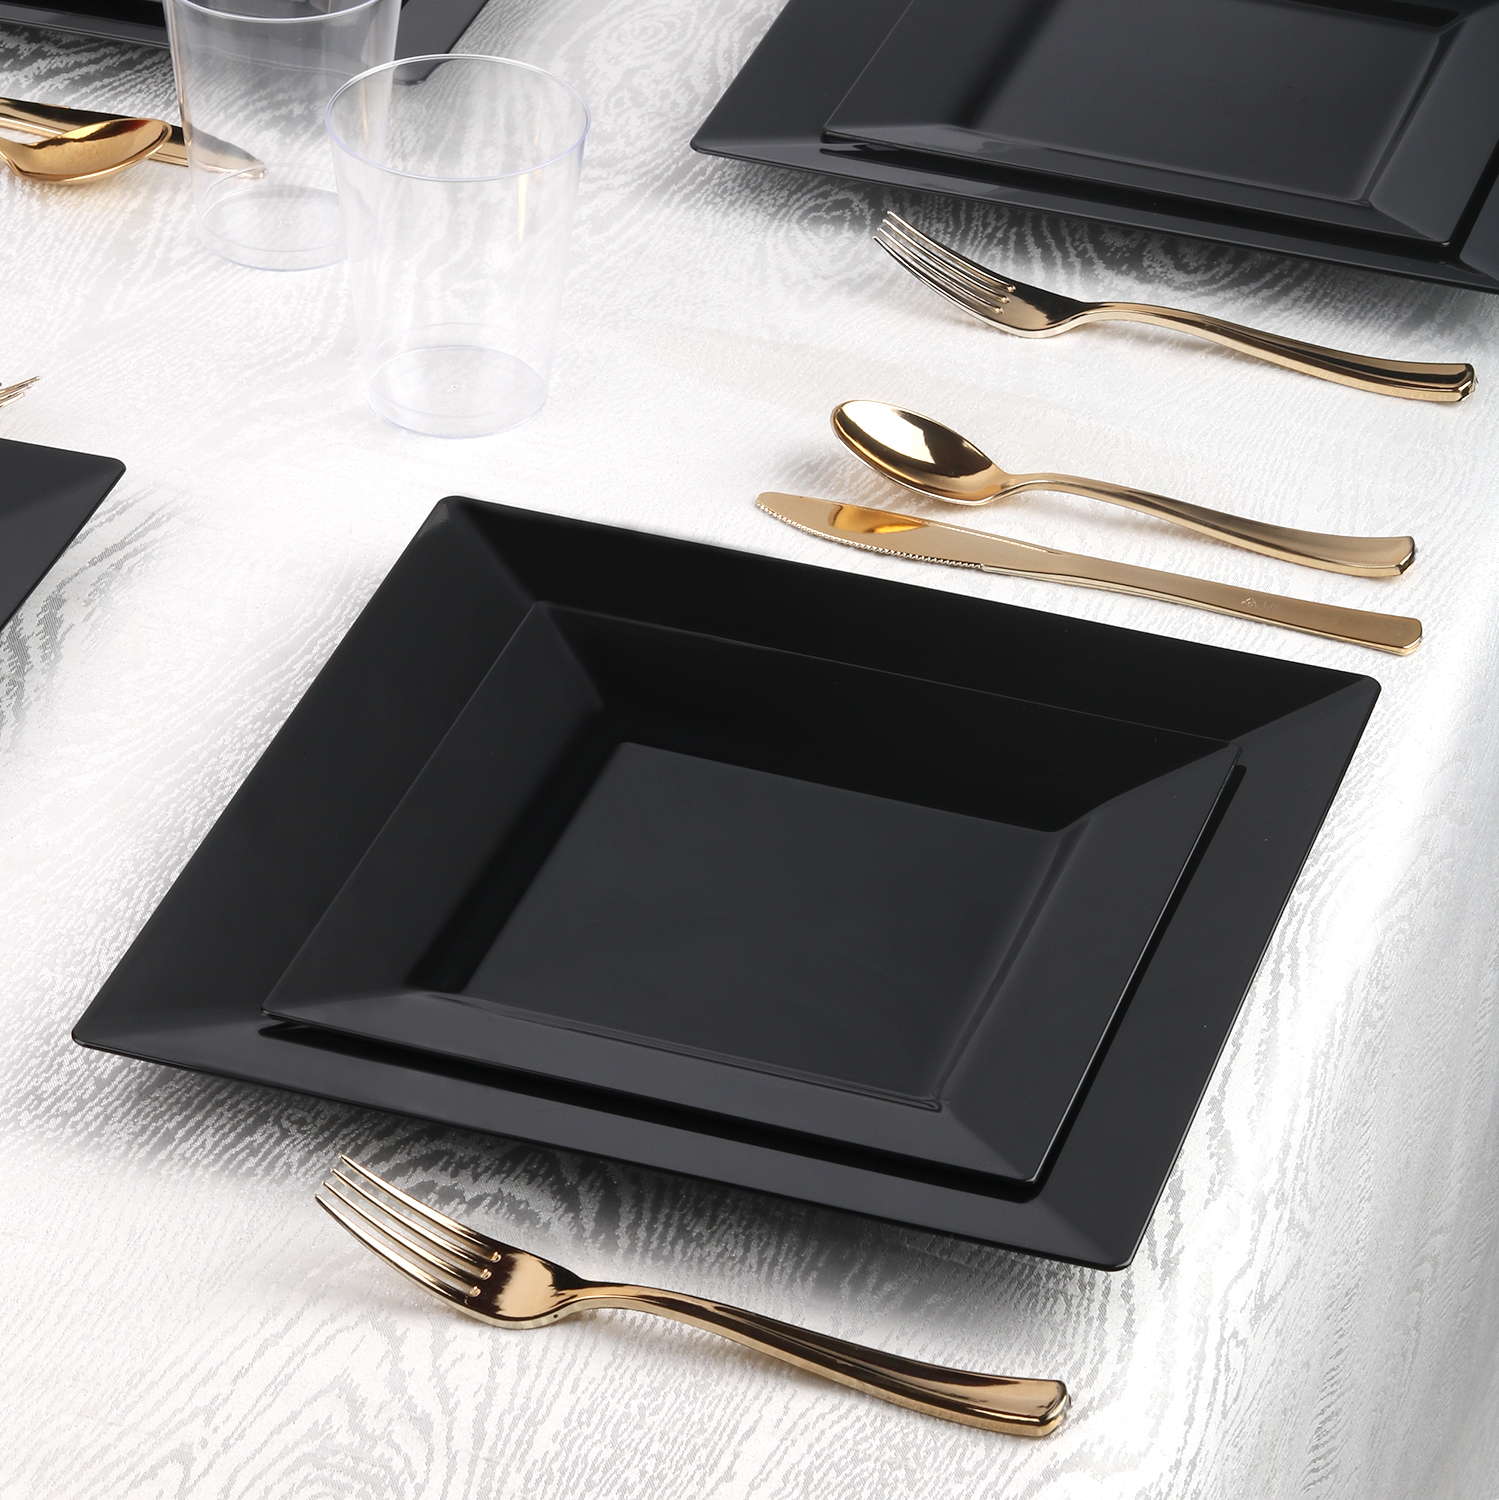 Kaya Collection - Square Black Disposable Plastic Dinnerware Party Package - 20 Person Package - Includes Dinner Plates, Salad/Dessert Plates, Gold Cutlery and Tumblers